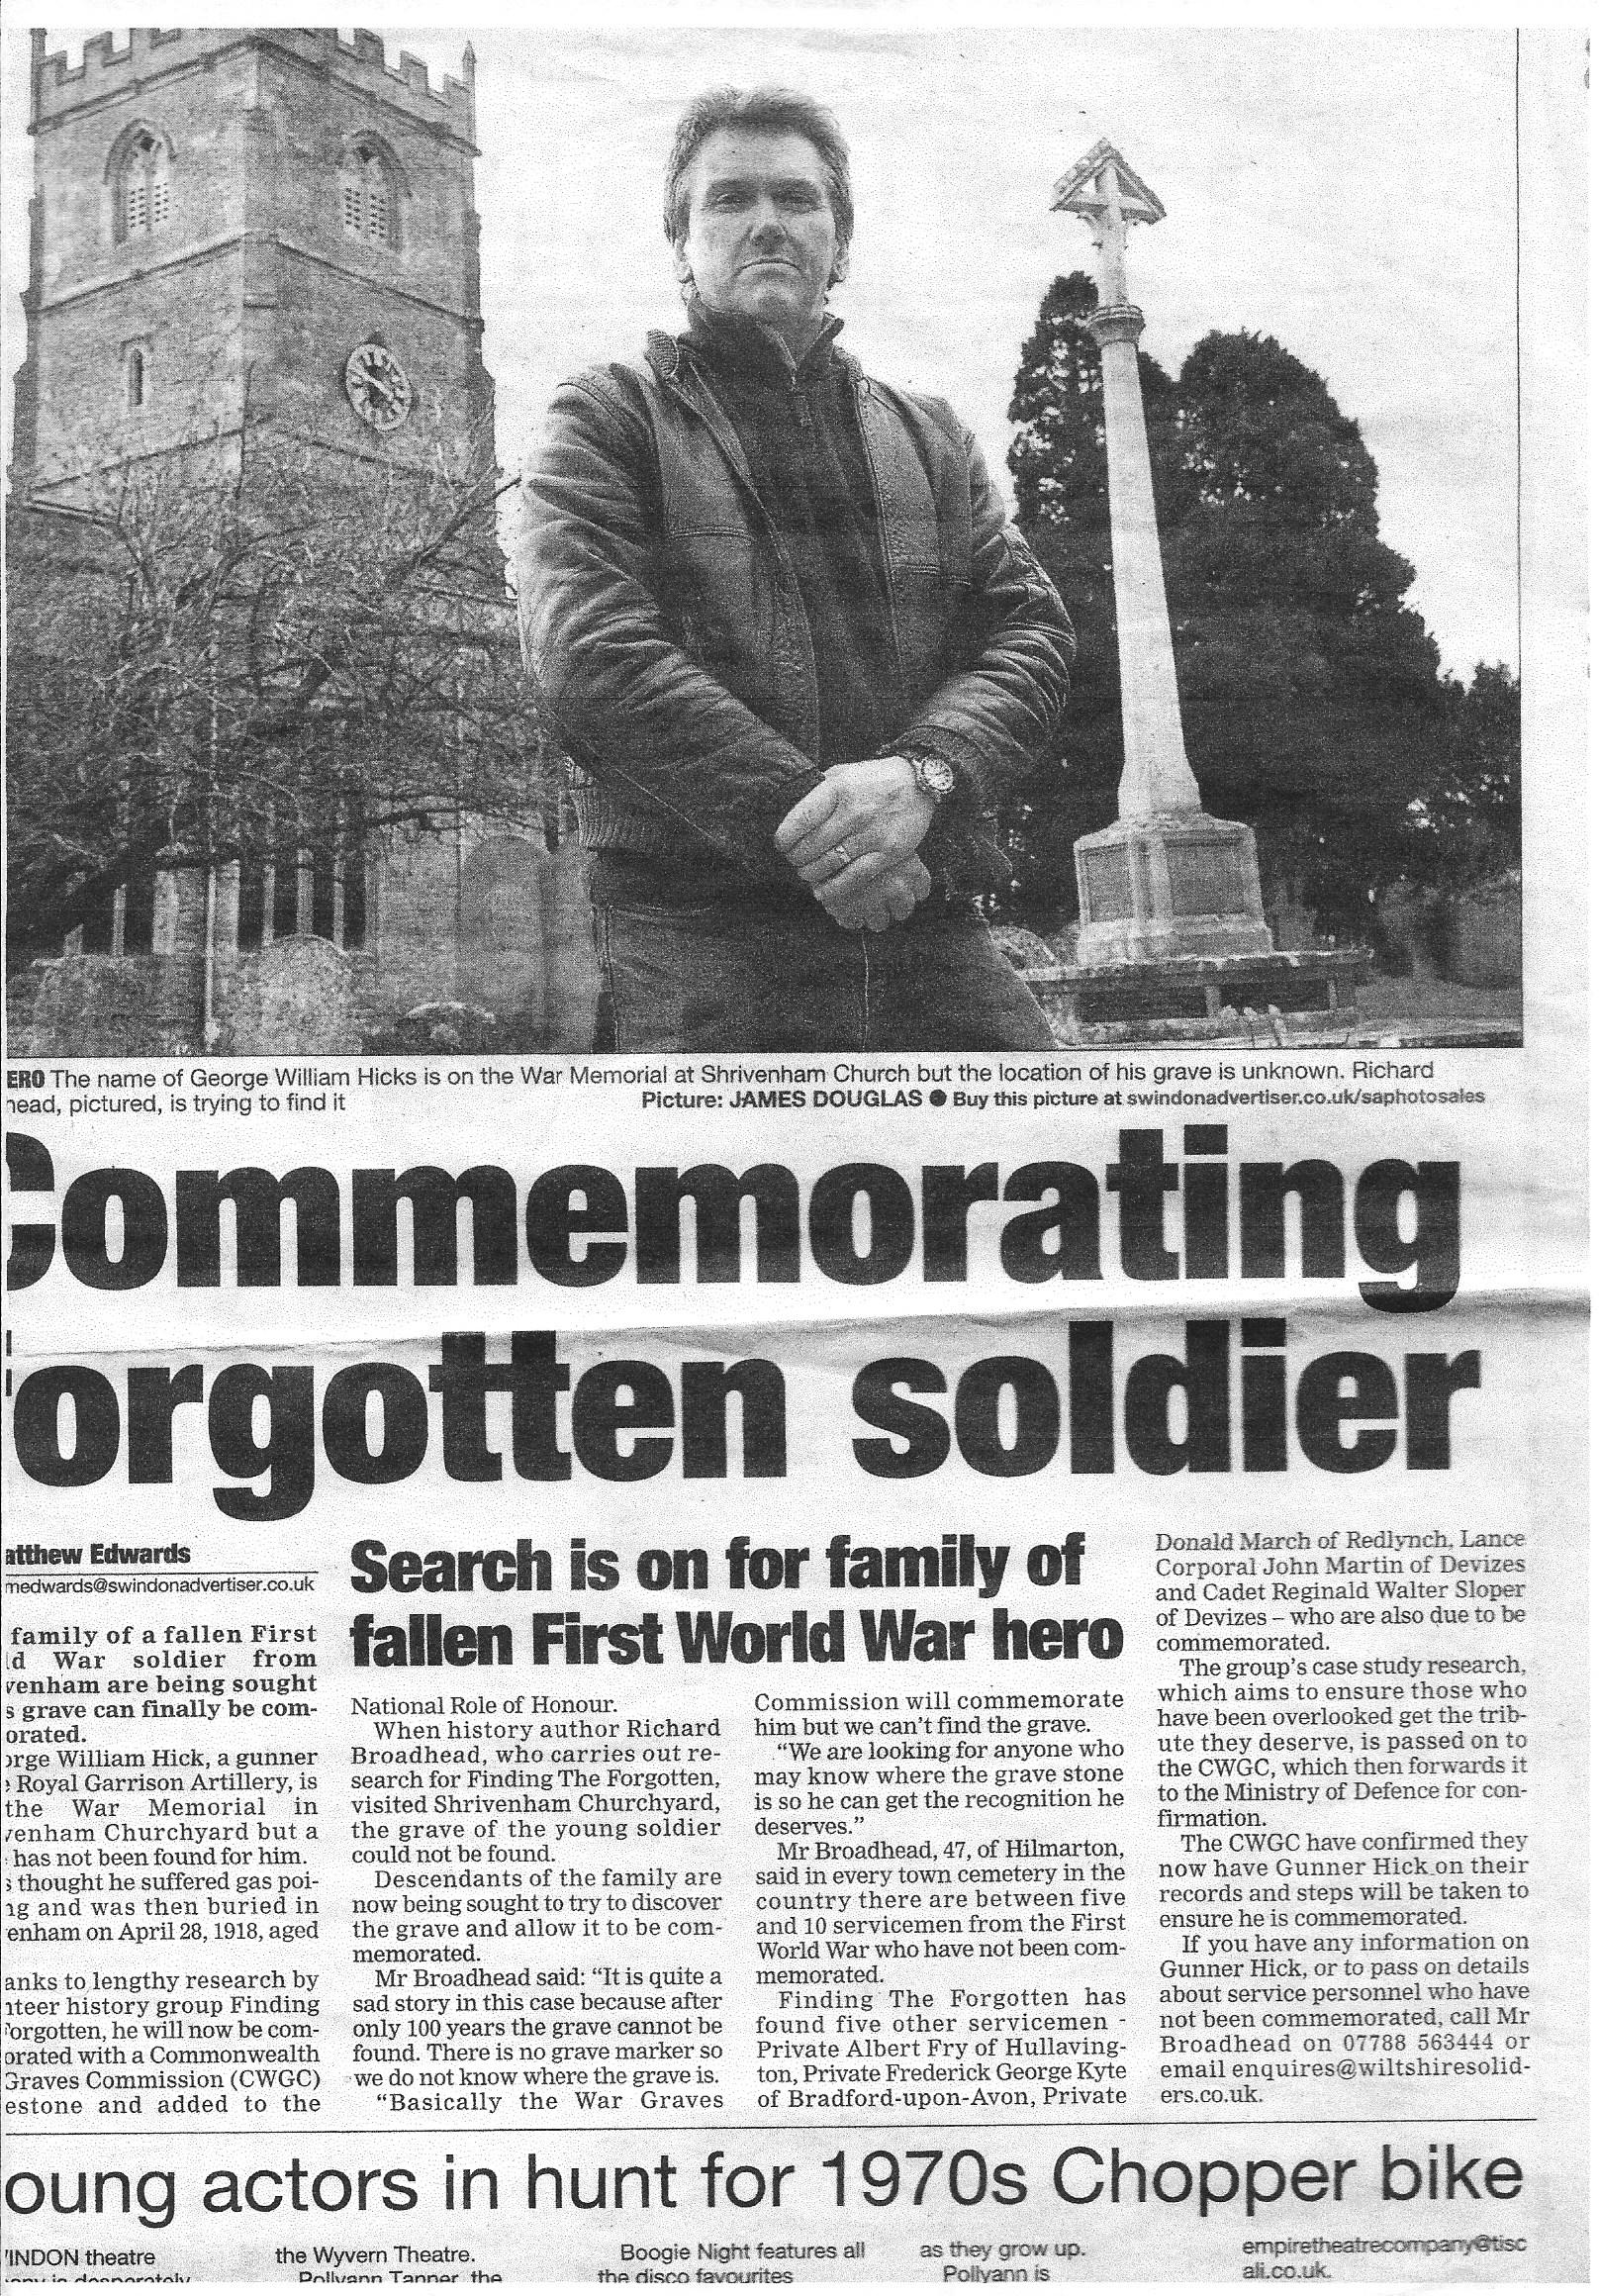 Late C20th newspaper report of search for Gunner Hicks grave